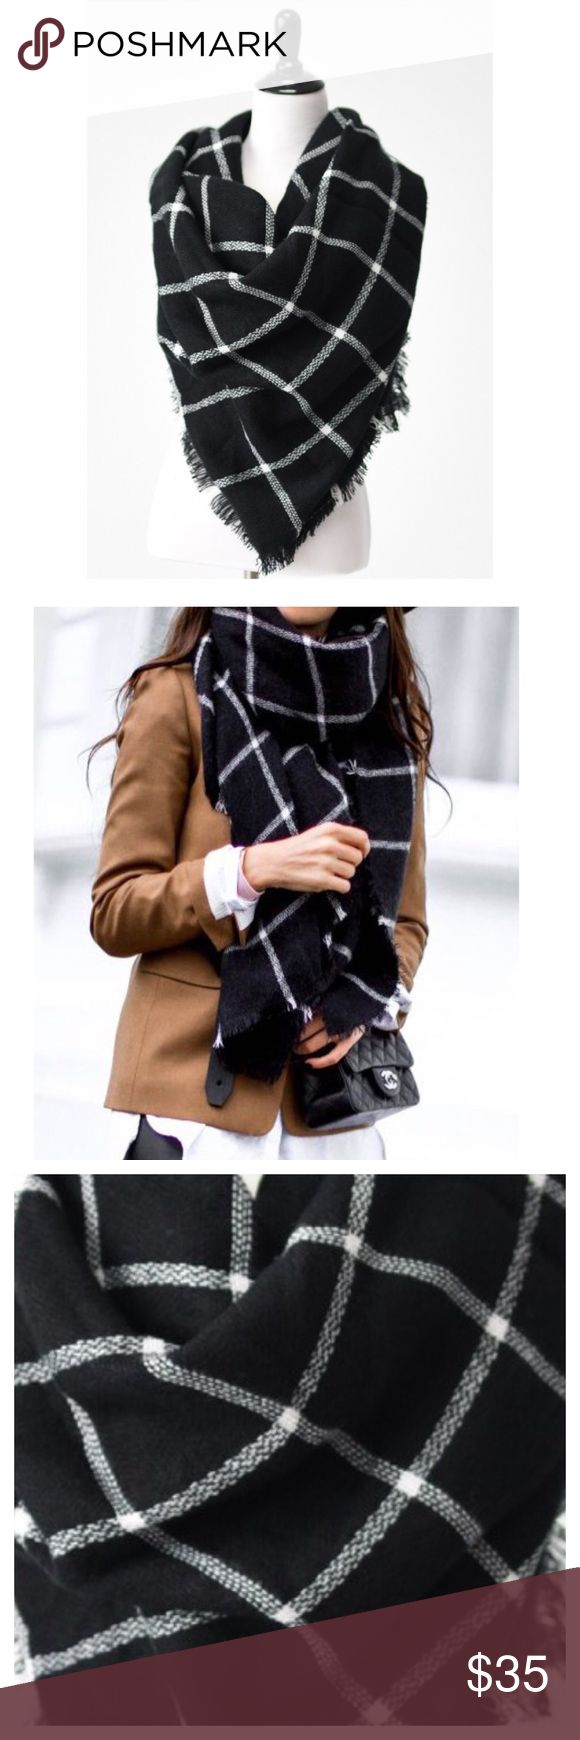 """✨HP✨Flash Sale-Black And White Plaid Blanket Scarf Host Pick- Style Crush Party. This listing is for a super soft and comfortable blanket scarf. Black and white blanket scarf. Feel warm and cozy whilst looking chic. 100% Acrylic. Dimension: 54""""x54"""". Looks great with a pair of jeans and top, or a midi dress and ankle boots. Bundle and save! Accessories Scarves & Wraps"""